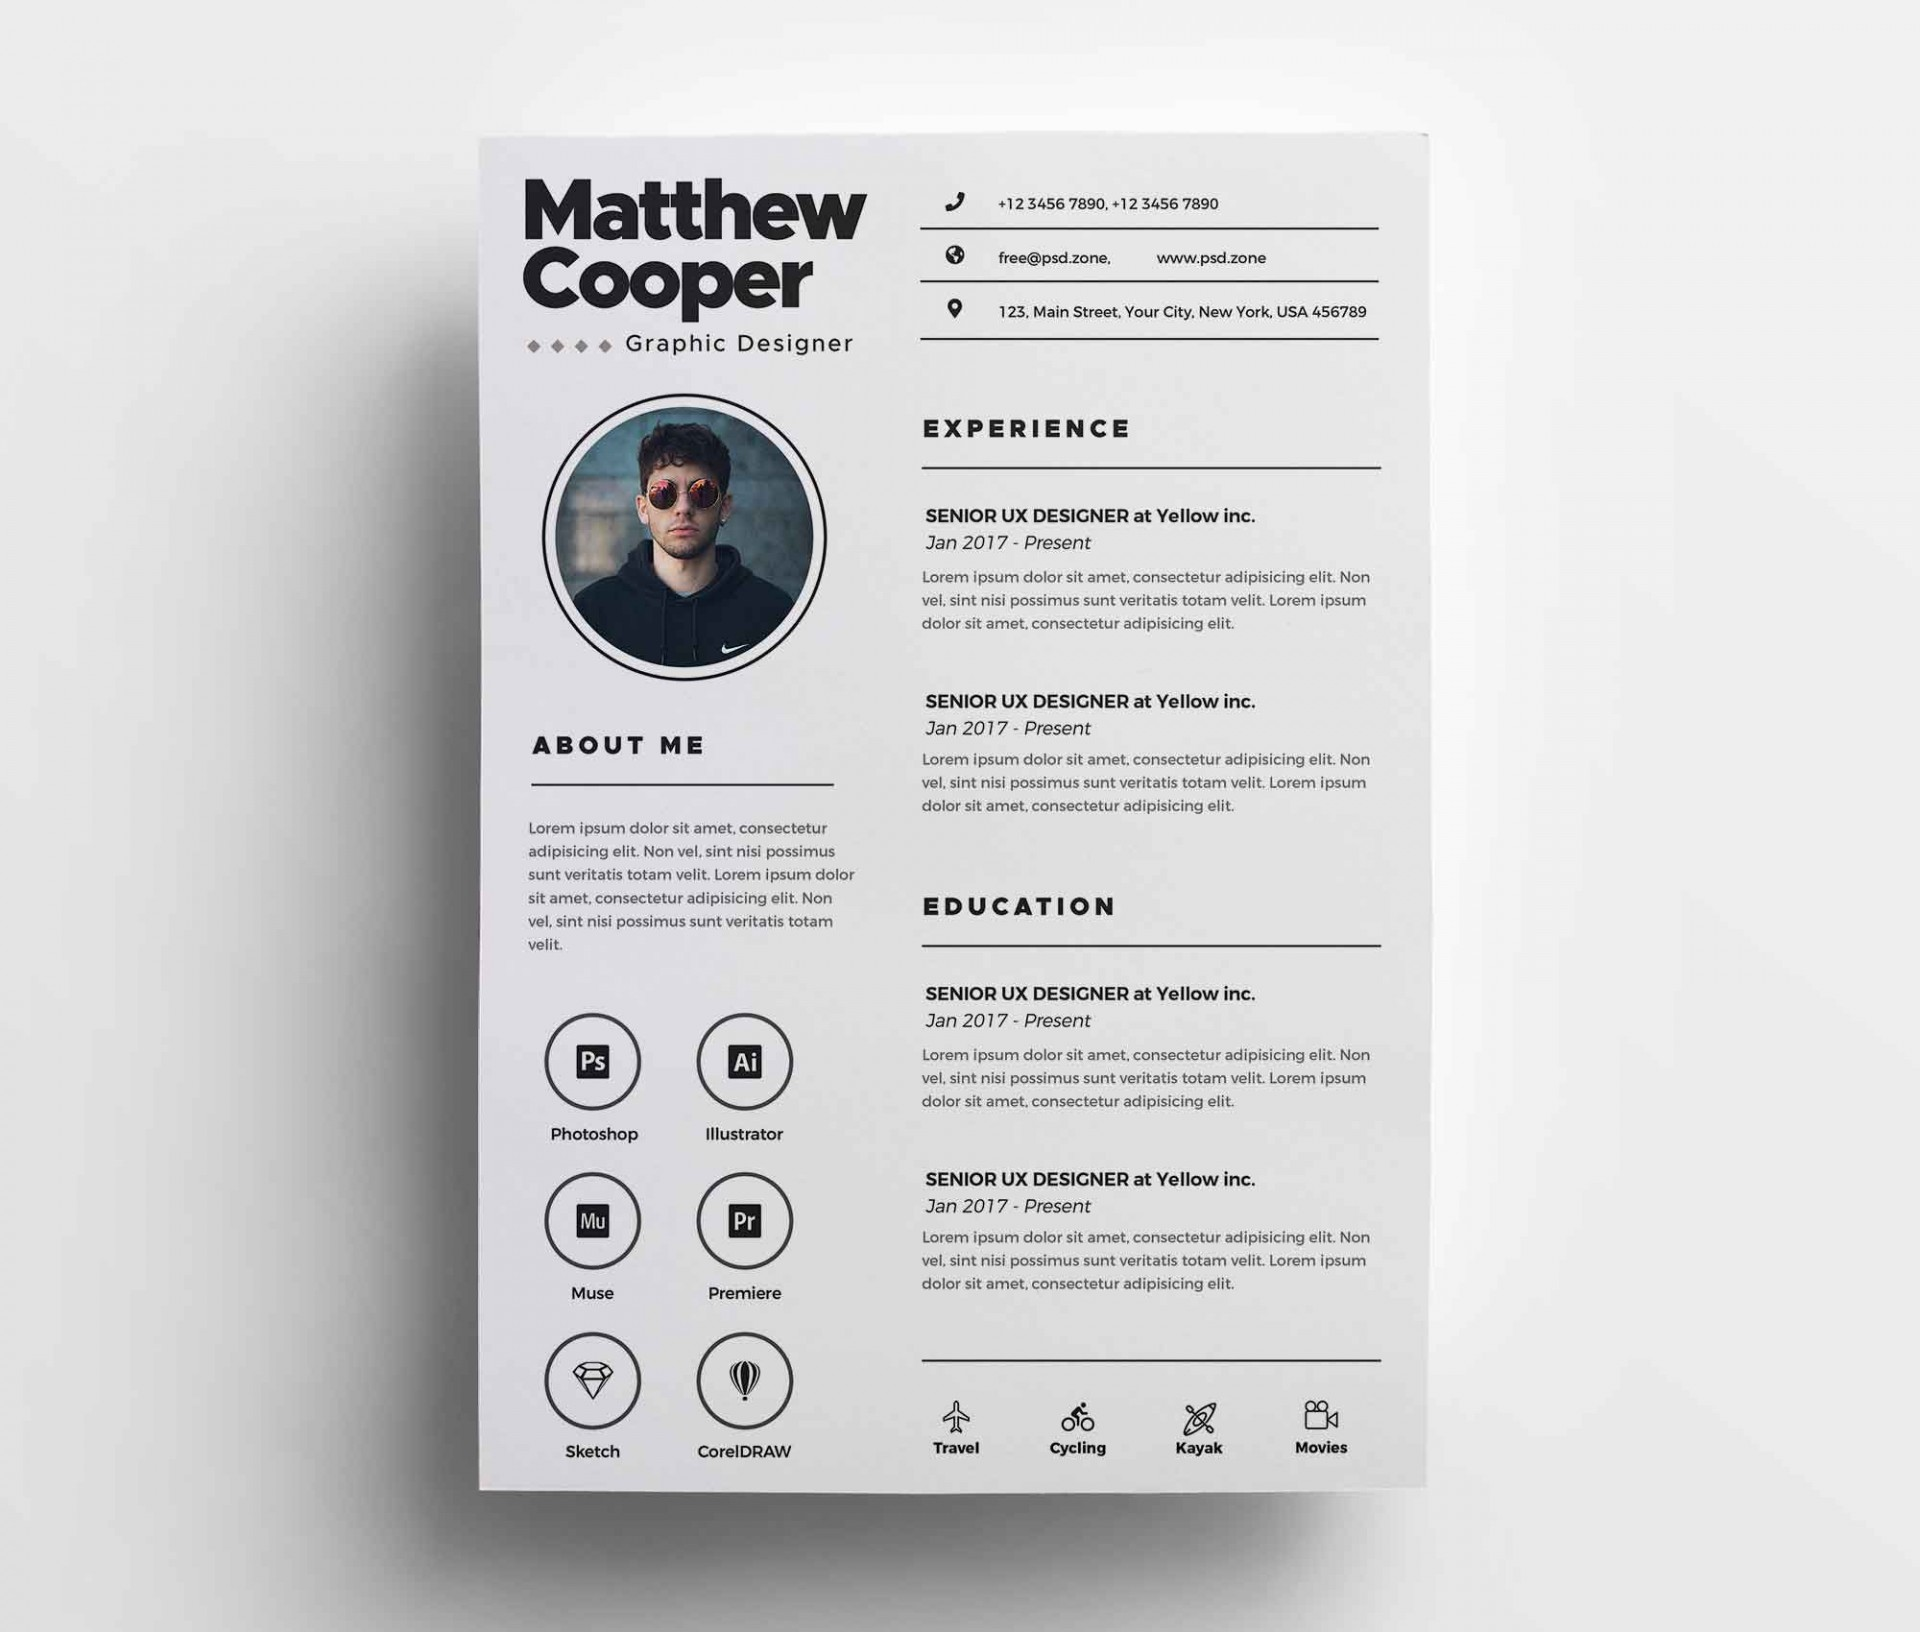 002 Exceptional Adobe Photoshop Resume Template Free Download Highest Clarity 1920